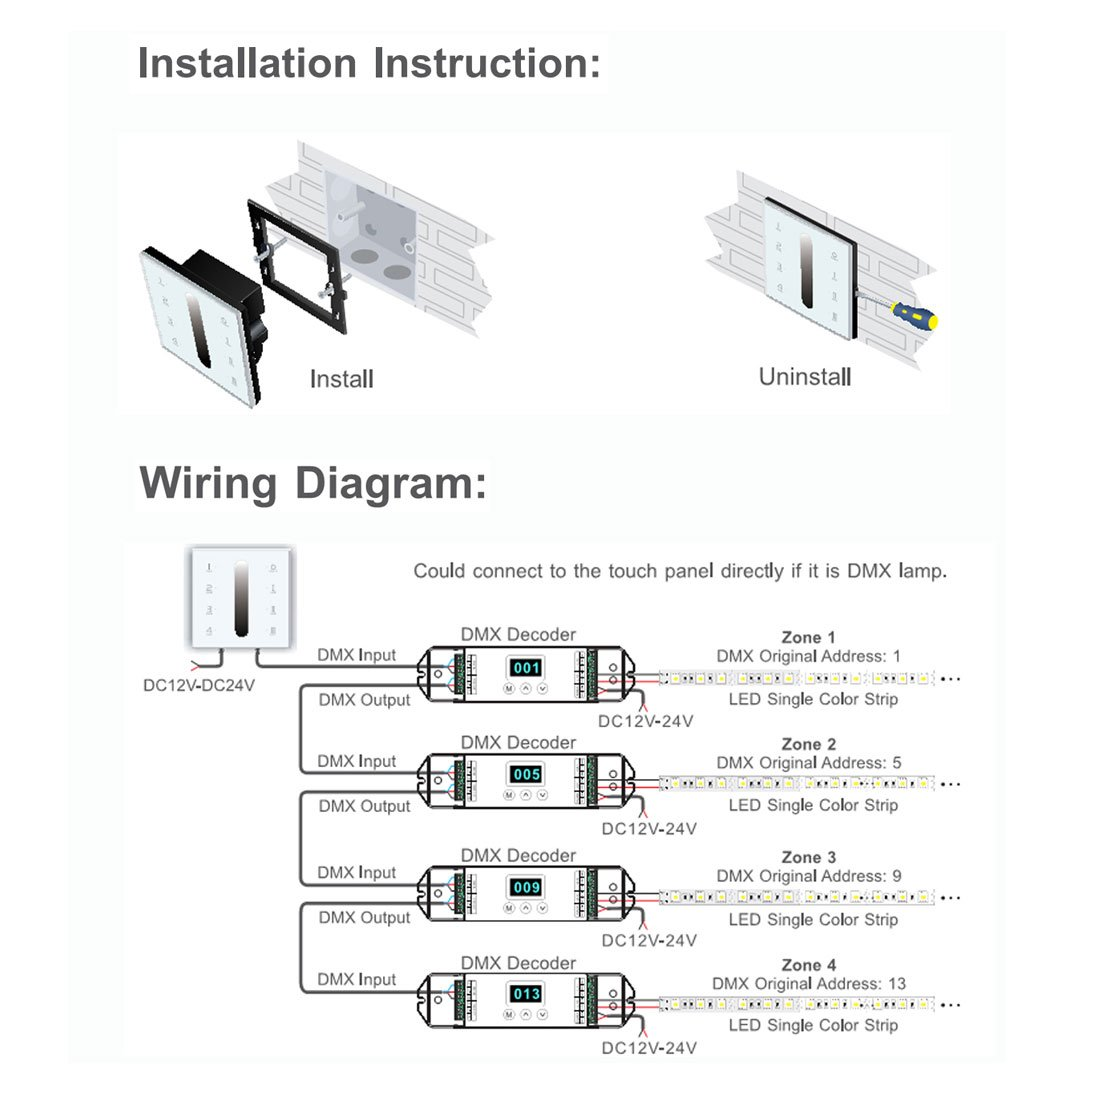 61vBlO04WFL._SL1100_ amazon com uxcell wall mount dc12 24v touch panel singlar color